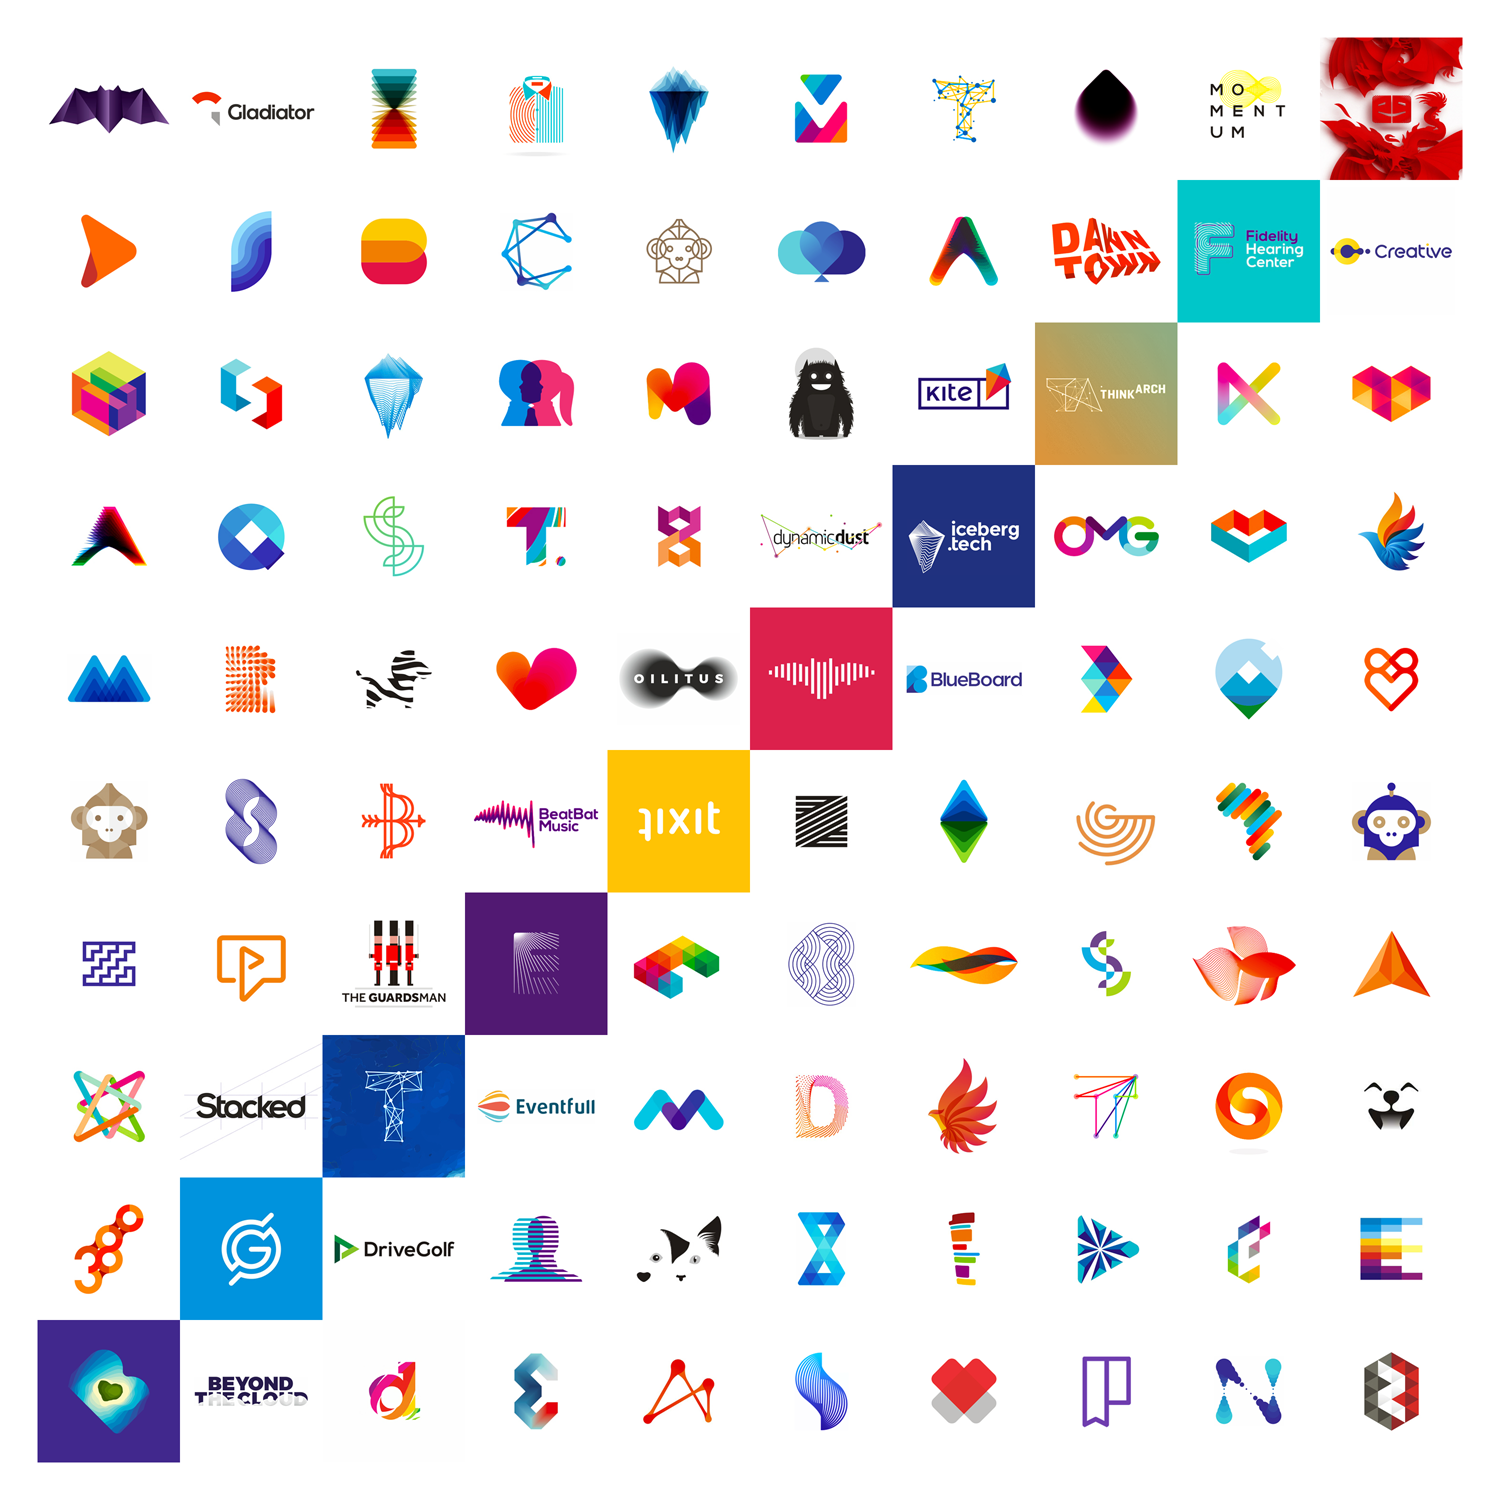 10 years 100 logo designs by Alex Tass